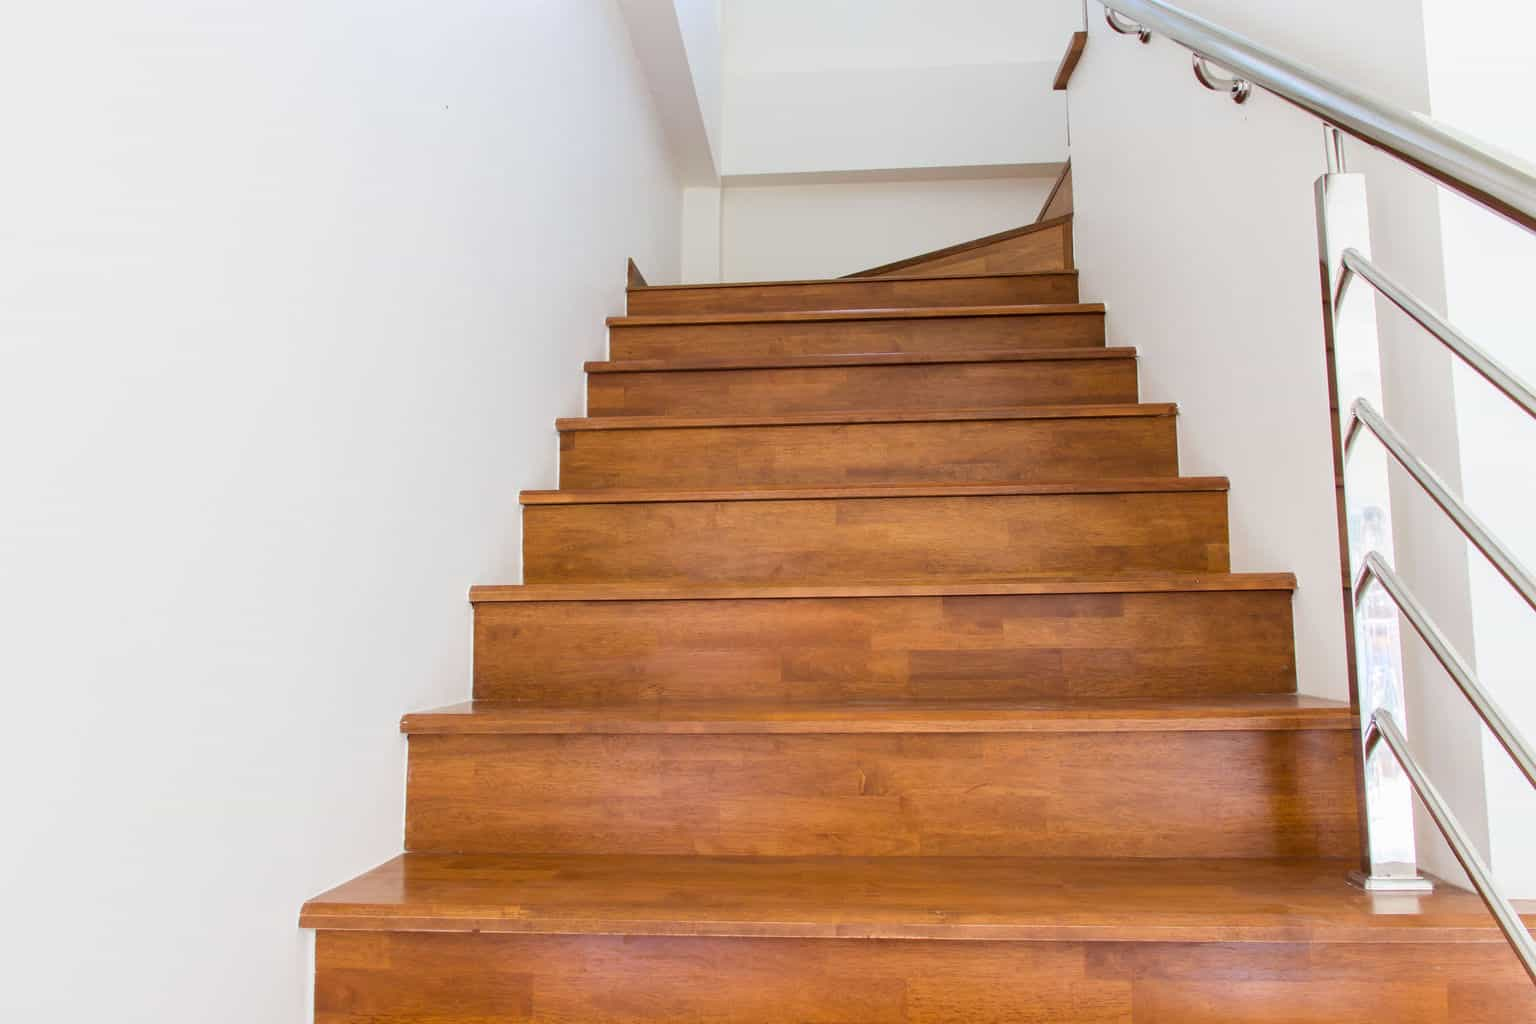 beautiful stair flooring options #4: Weu0027ve talked to many people who want to know what options they have besides  carpet; laminate flooring on stairs tends to be popular once weu0027ve gone  over all ...